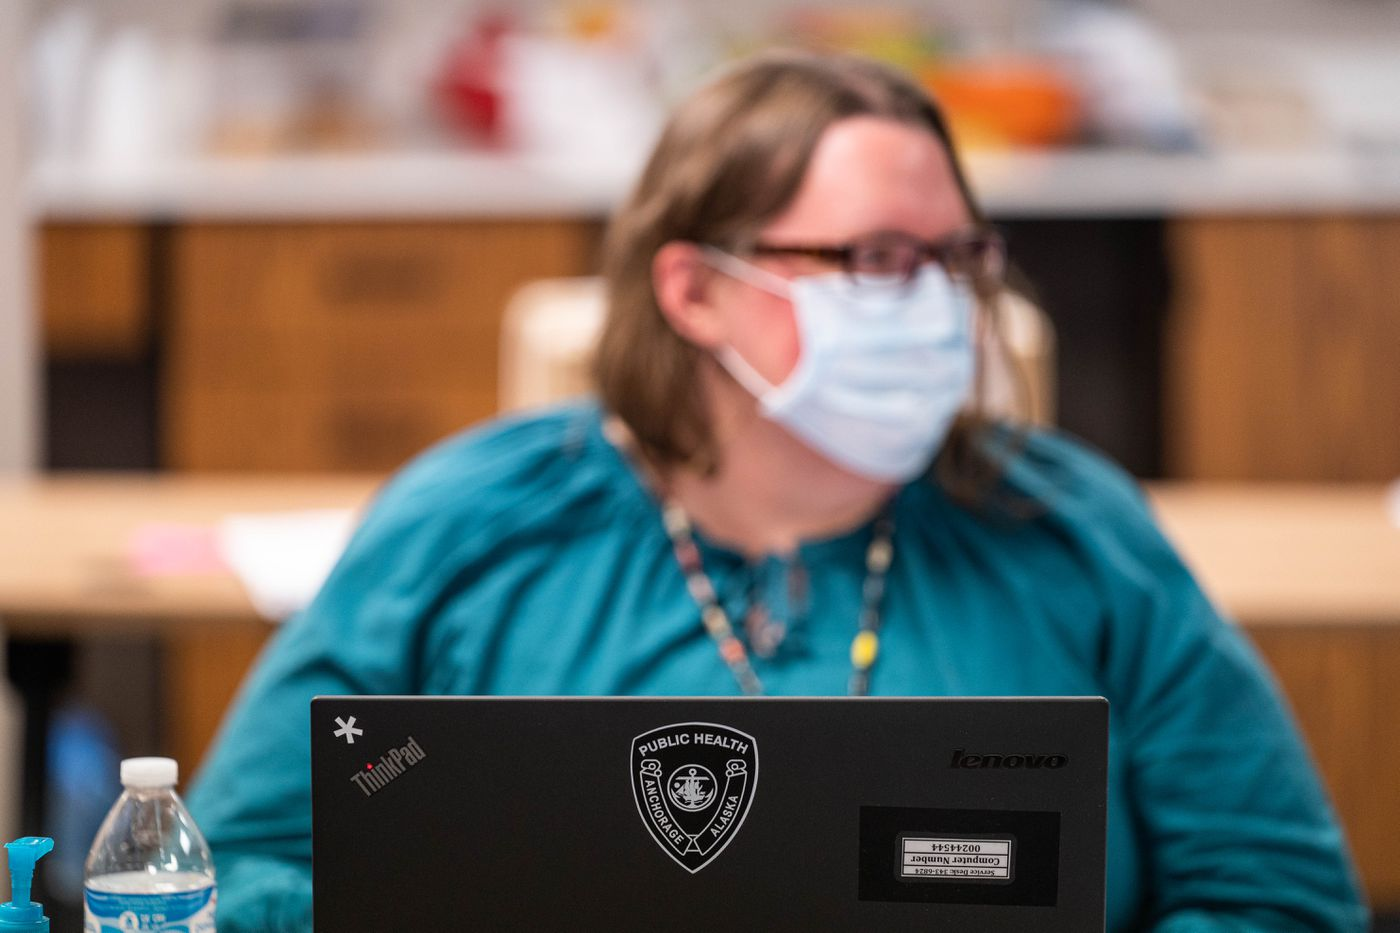 Anchorage Health Department nurse Amy Doogan works on the COVID-19 contact investigations and monitoring team on Thursday, April 16, 2020. The team is made up of nurses from the municipality as well as from the Anchorage School District. (Loren Holmes / ADN)